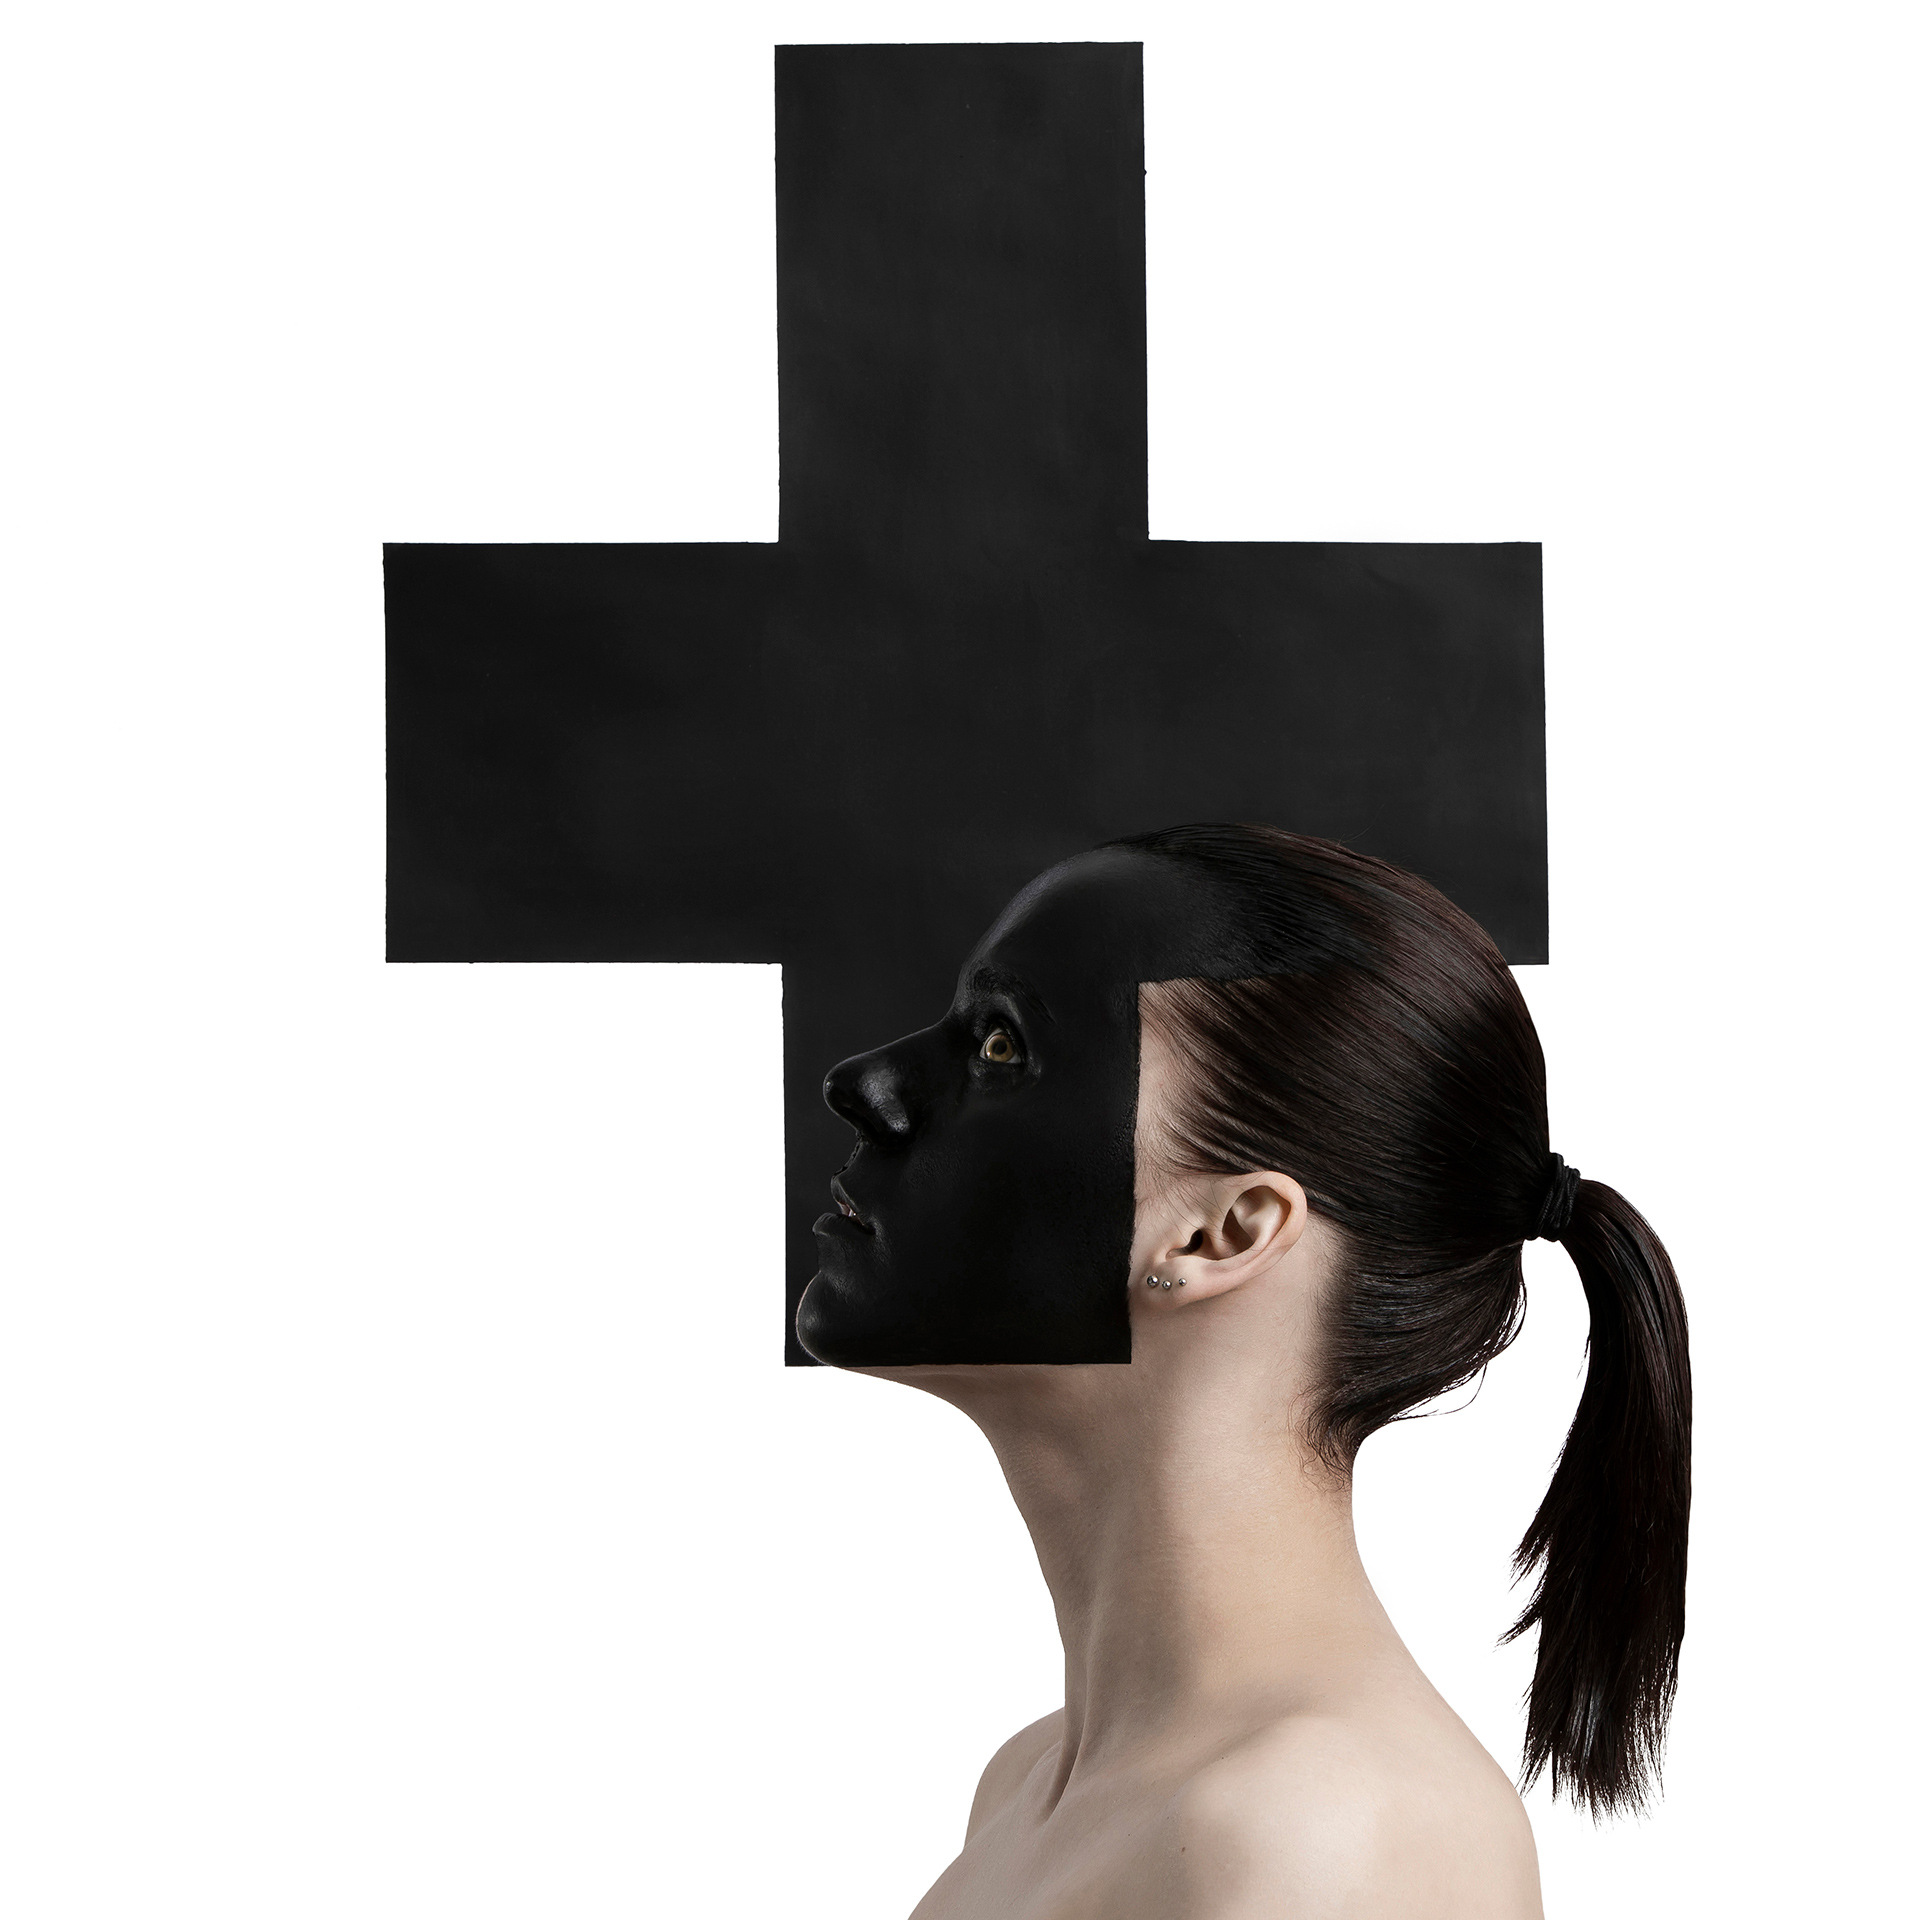 Black Cross, Kazimir Malevich, suprematism, triptych, Black Square, Black Circle, Black Cross, Model, Varvara Agapova, Painting, Eugenia Sorokina, Idea, photography, Ivan Bessedin, art, studio, minimalism, fashion